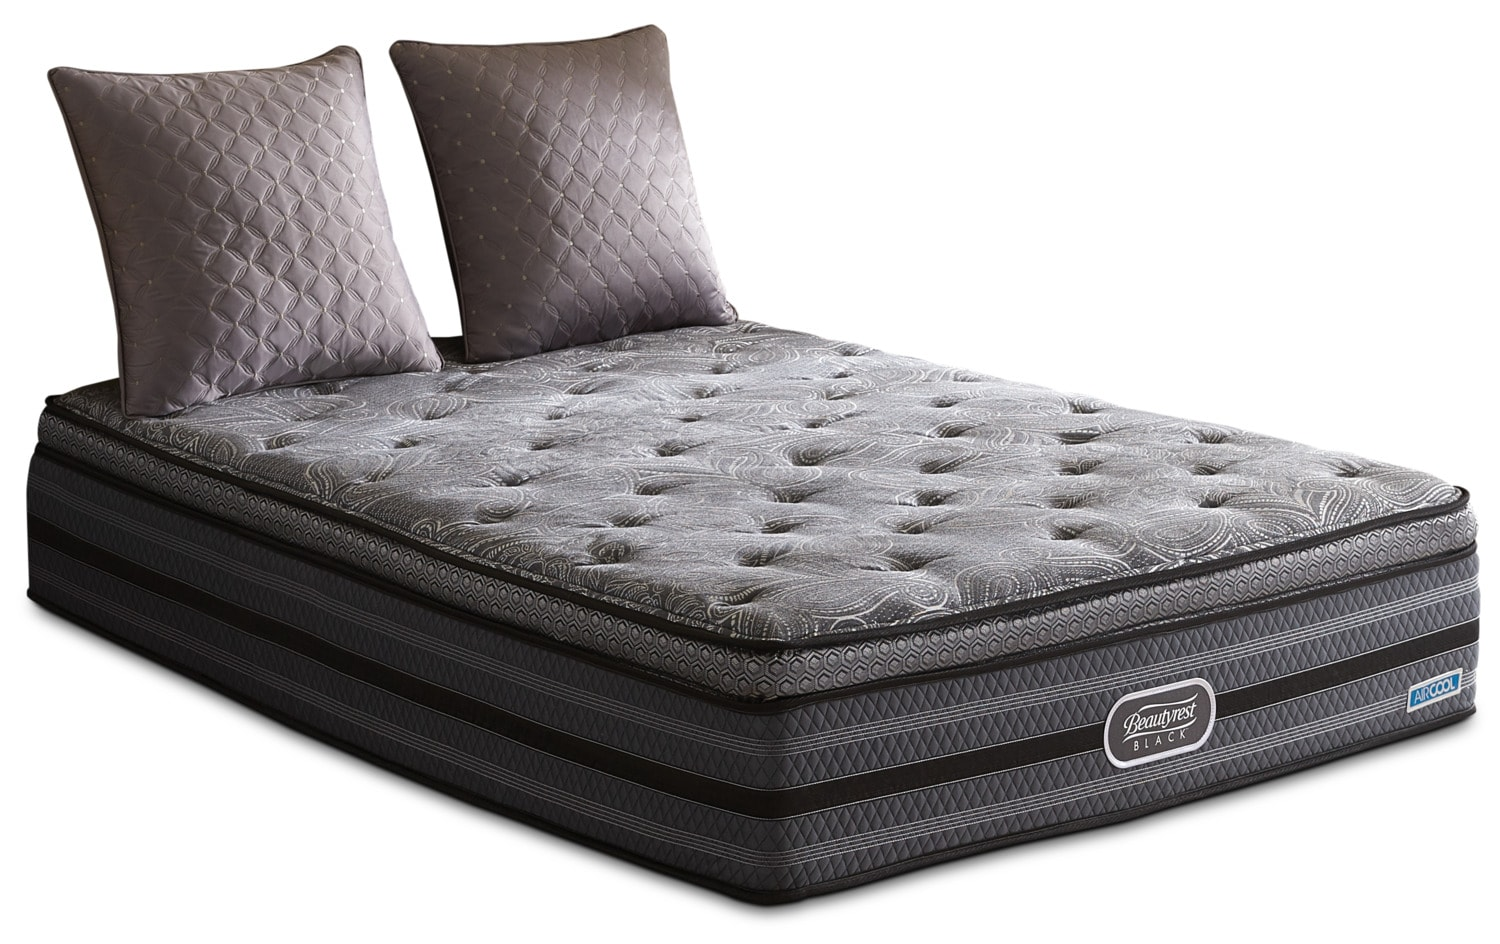 Beautyrest Black Legendary Comfort-Top Luxury Firm King Mattress